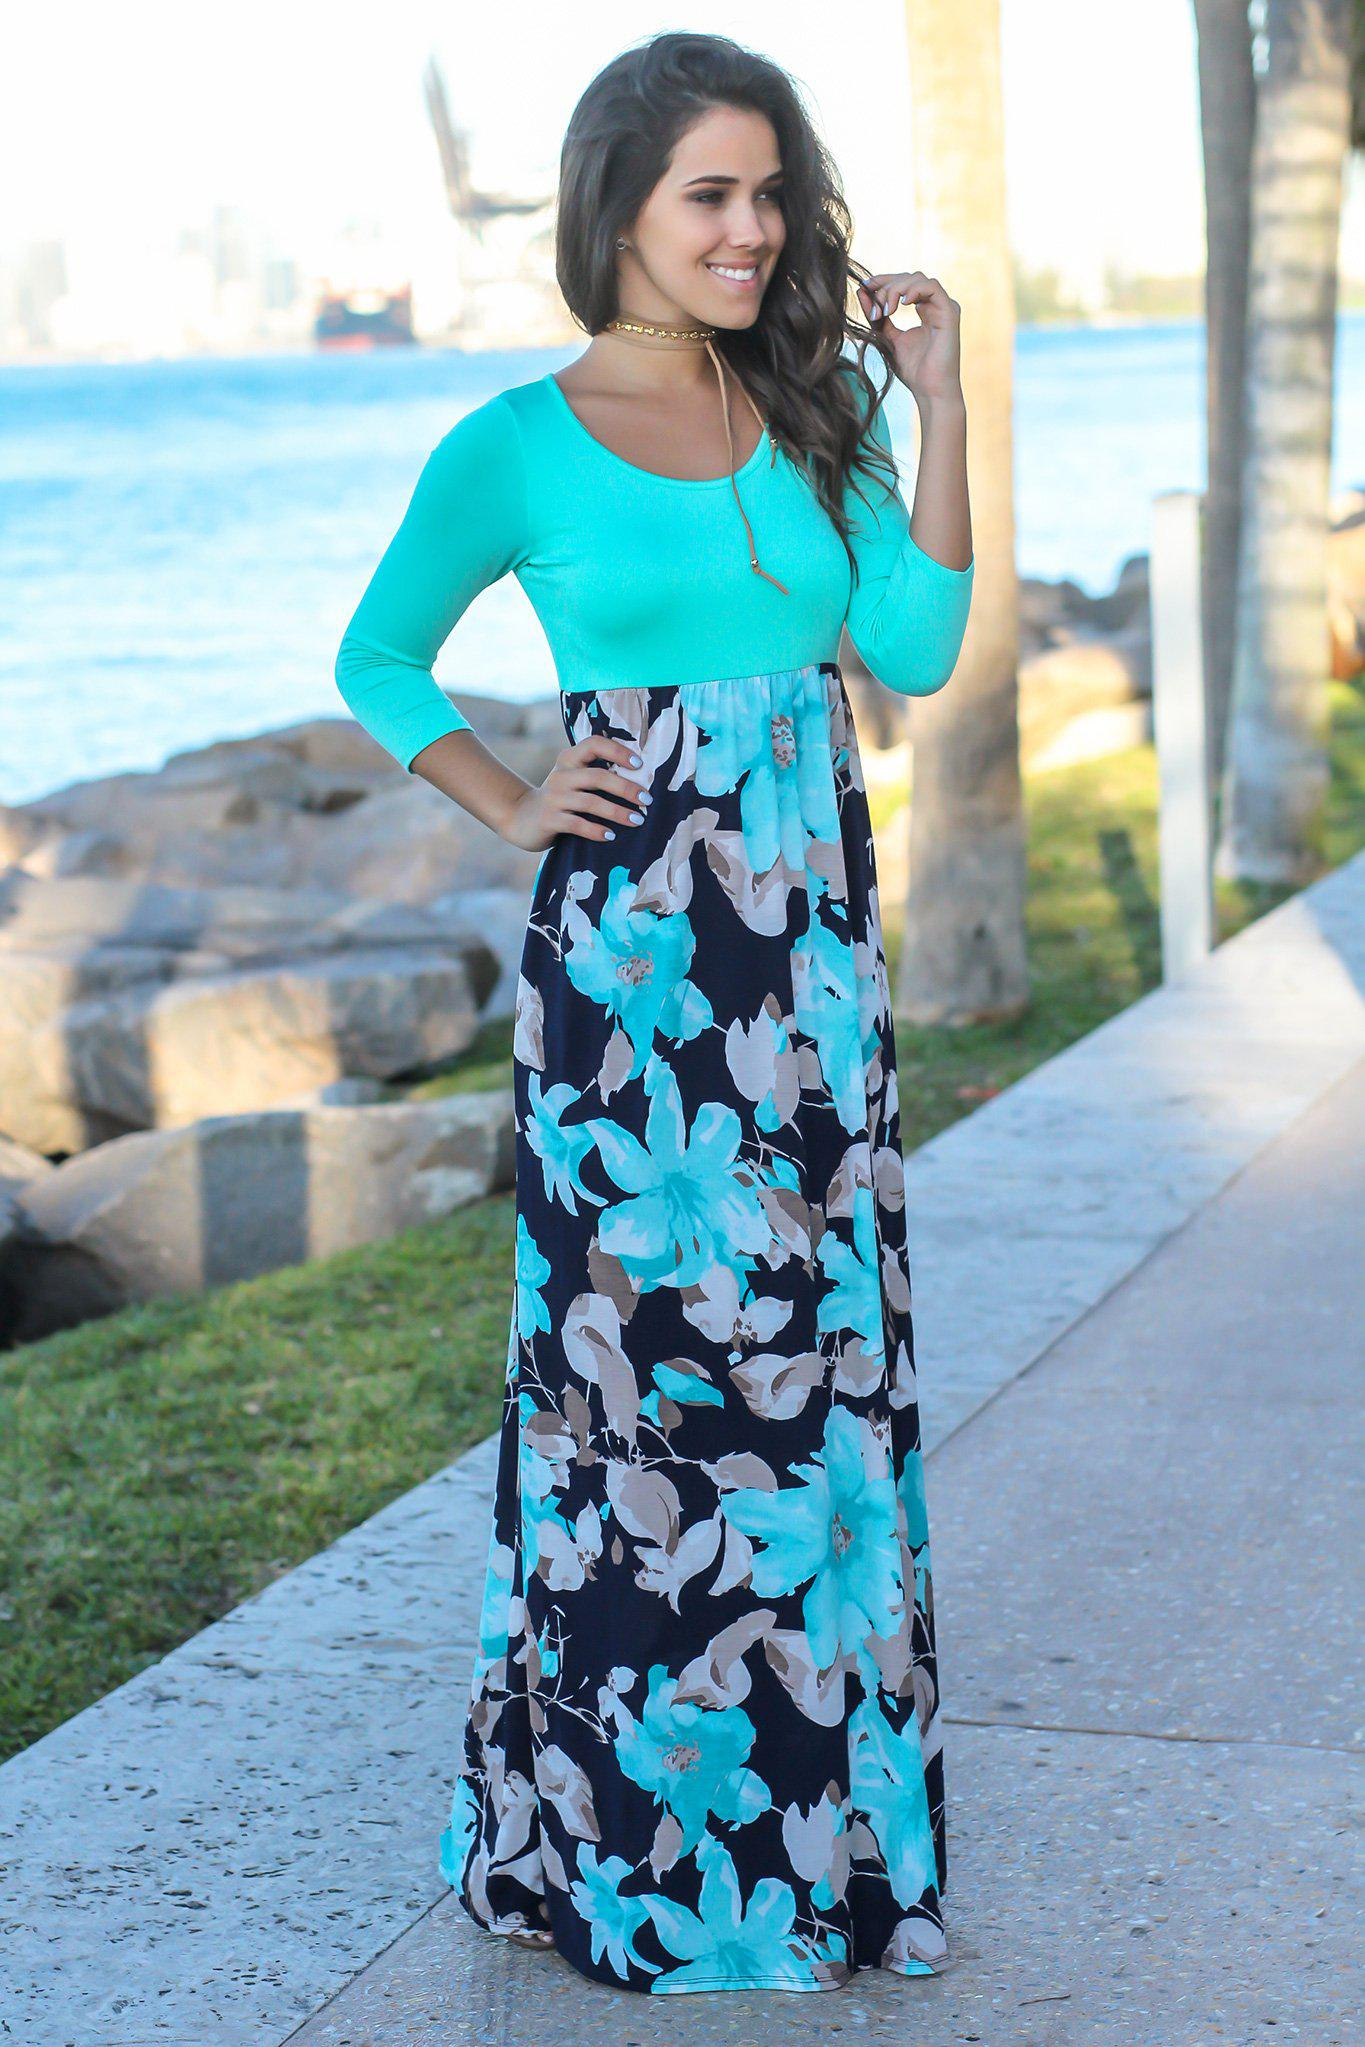 639ae95f1e2 Floral Dresses  Dress Boutiques  Maxi Dresses  Navy and Mint Floral Maxi  Dress with 3 4 Sleeves ...